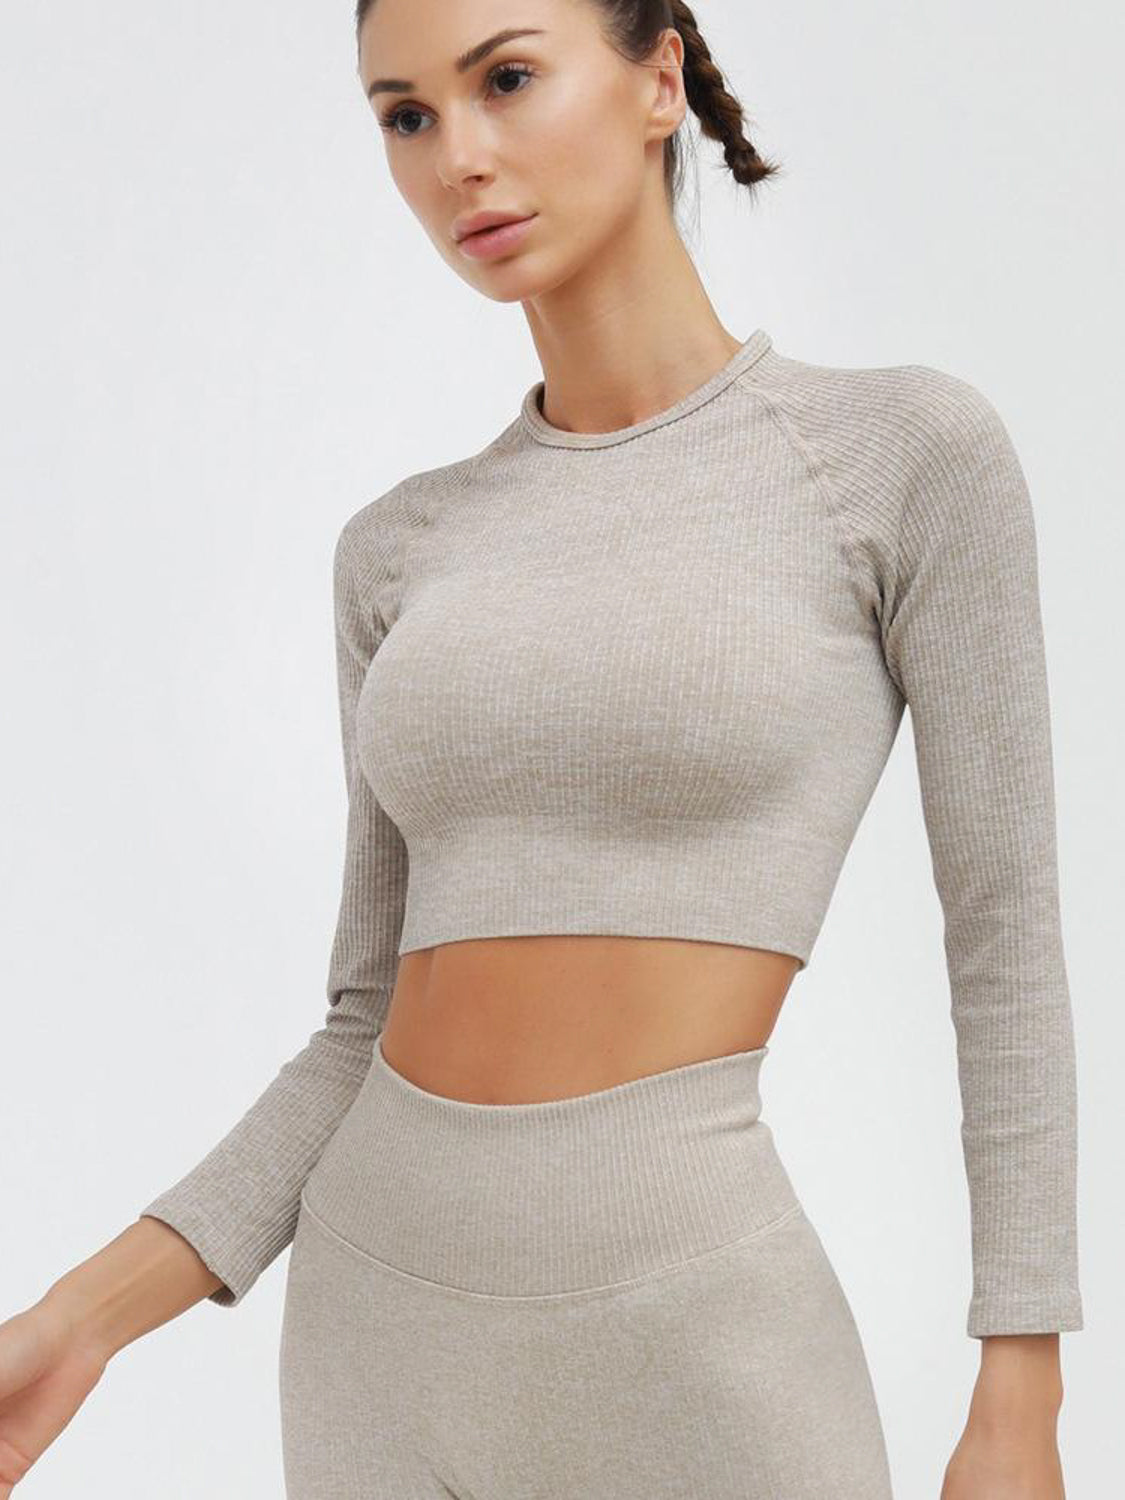 MOVI Sculpt+ Ribbed Sleeved Crop - Beige